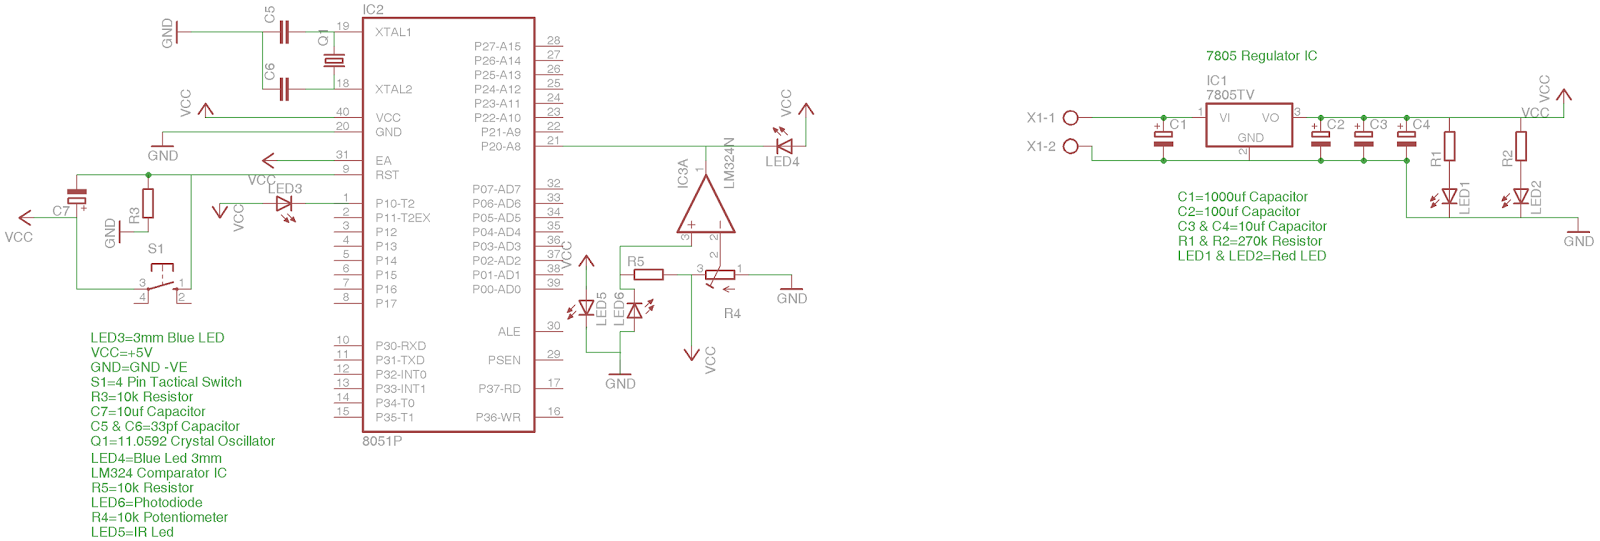 Interfacing LM324 Comparator IC with IR(Infra Red Light) Sensor and 8051 Microcontroller on Bread Board - Circuit Diagram